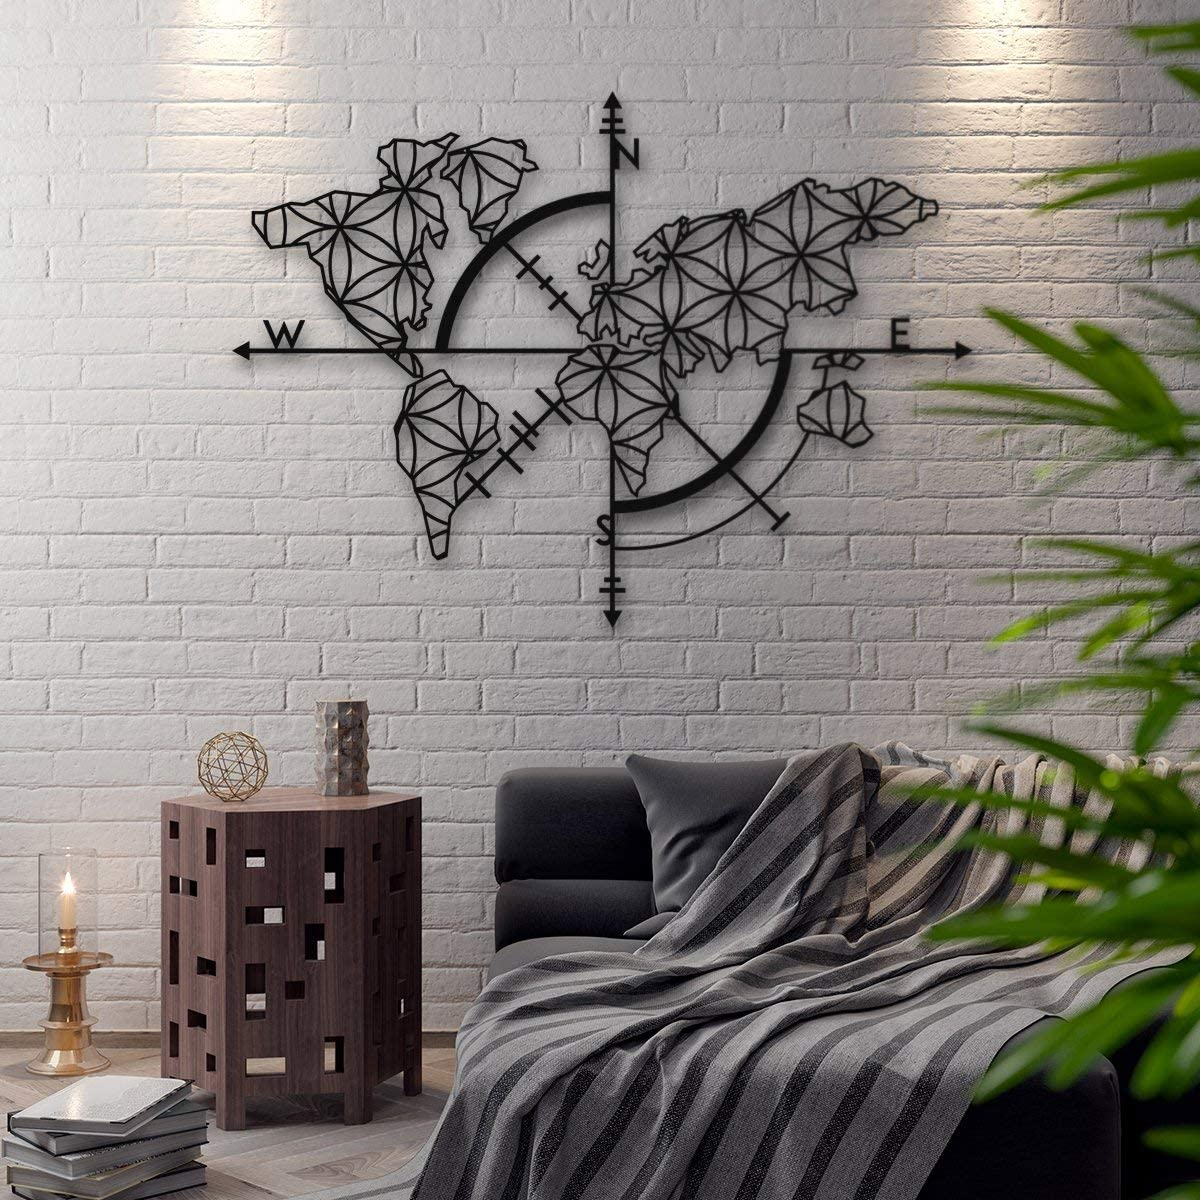 Bekata Map of Life, Metal Wall Art, World Map and Compass Themed Wall Decor Home Gift Housewarming Gift Wedding Gift 53 X 39 inches Carte Du Monde